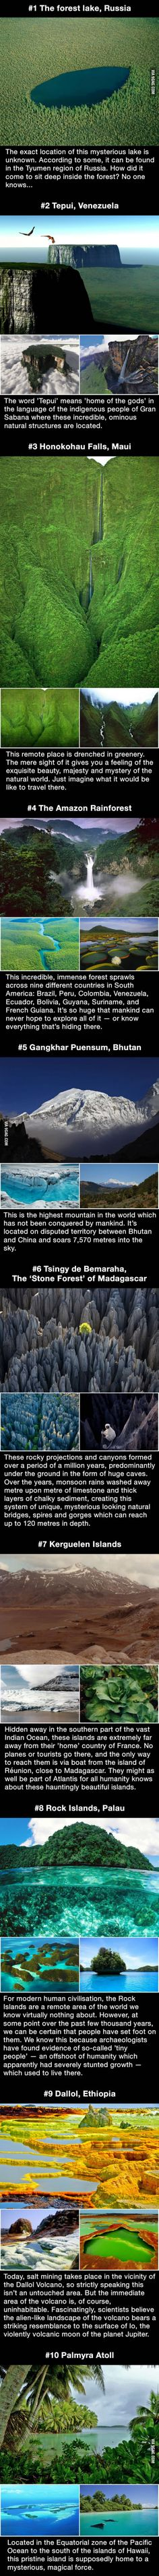 Ten incredible and mysterious places around the world untouched by mankind